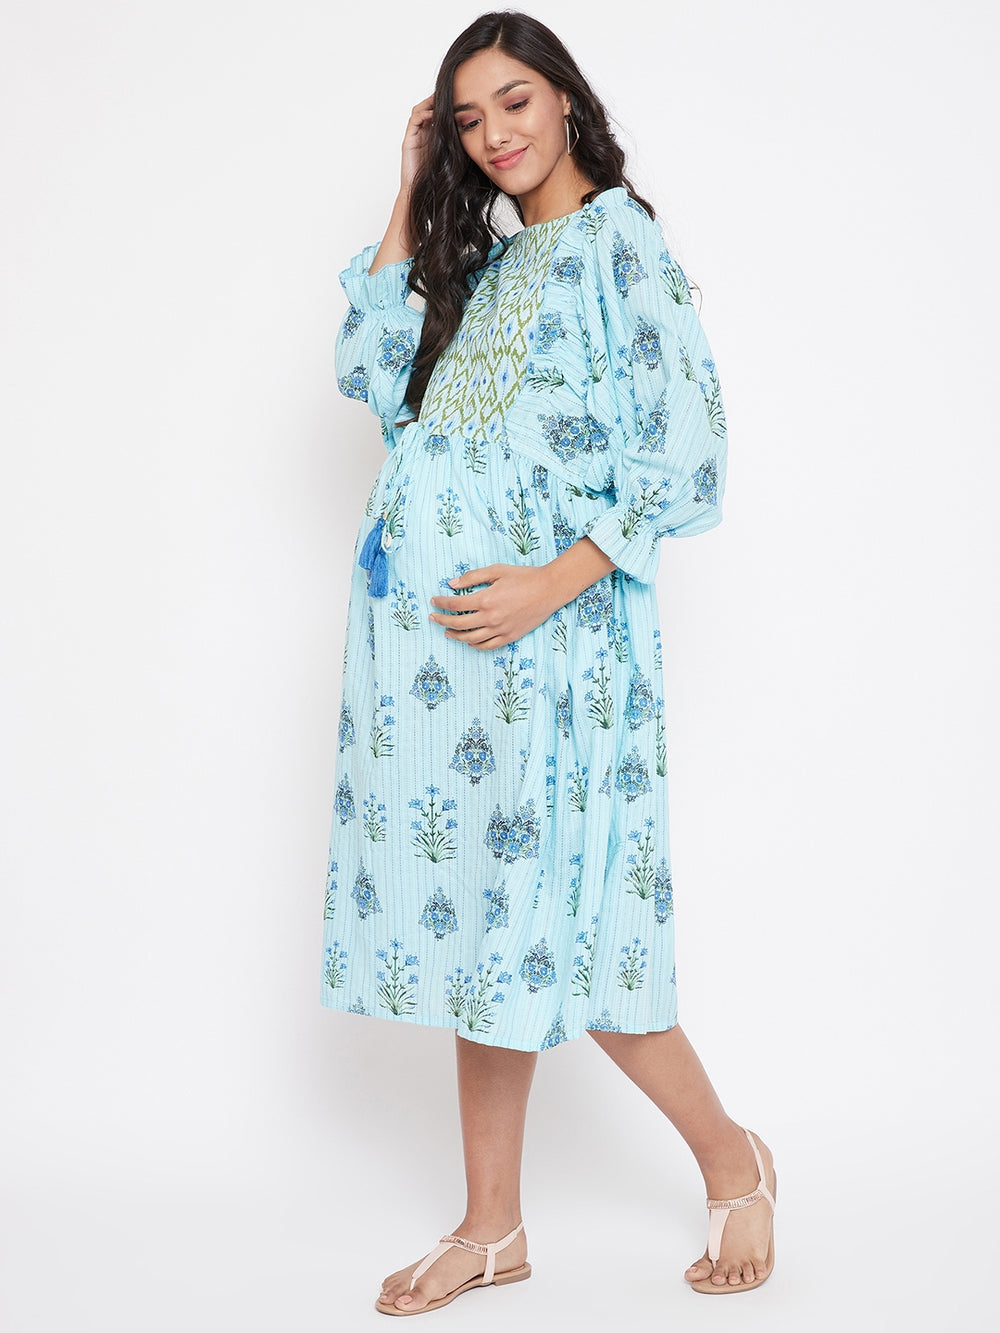 Pastel Blue Floral Printed Maternity Dress